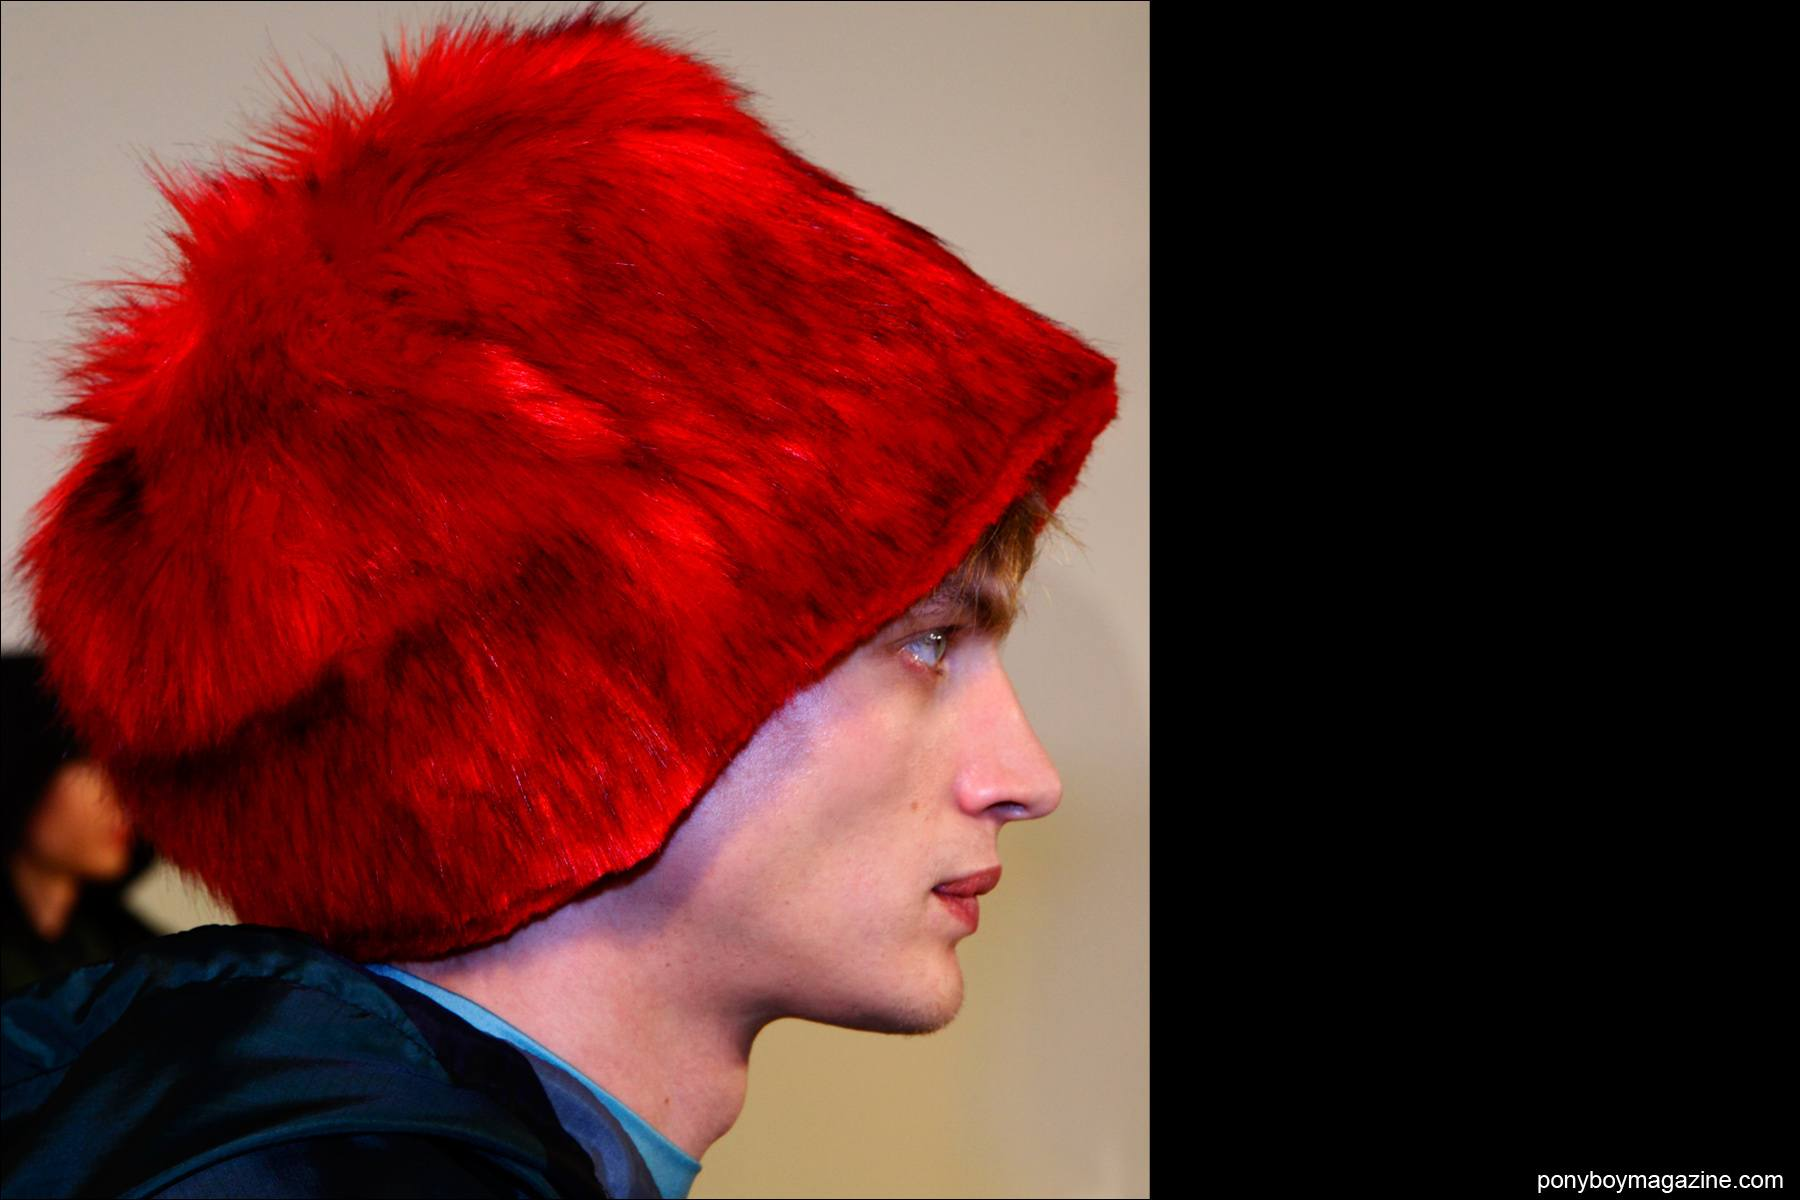 A red fuzzy hat at the Bobby Abley F/W15 presentation at Milk studios NY. Photograph by Alexander Thompson for Ponyboy magazine.